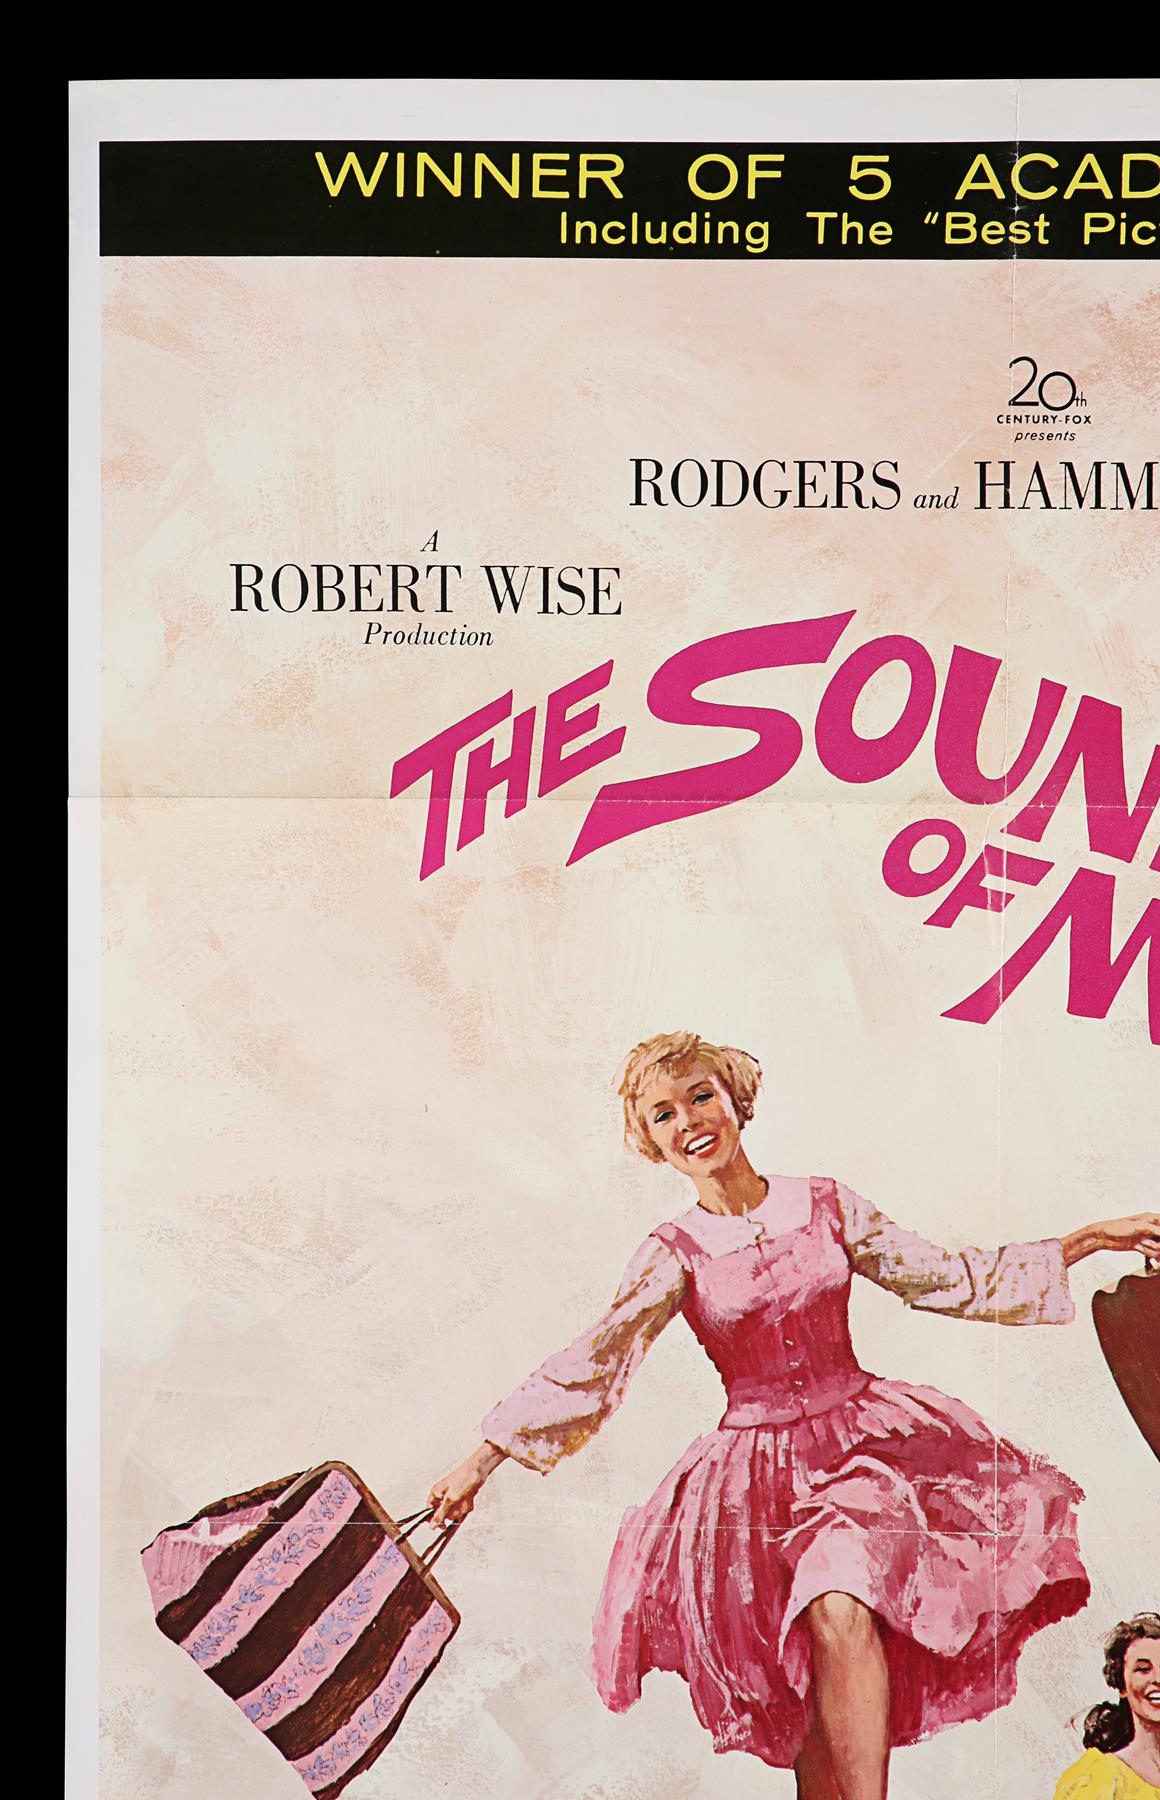 THE SOUND OF MUSIC (1965) - US One-Sheet, 1965 - Image 2 of 7